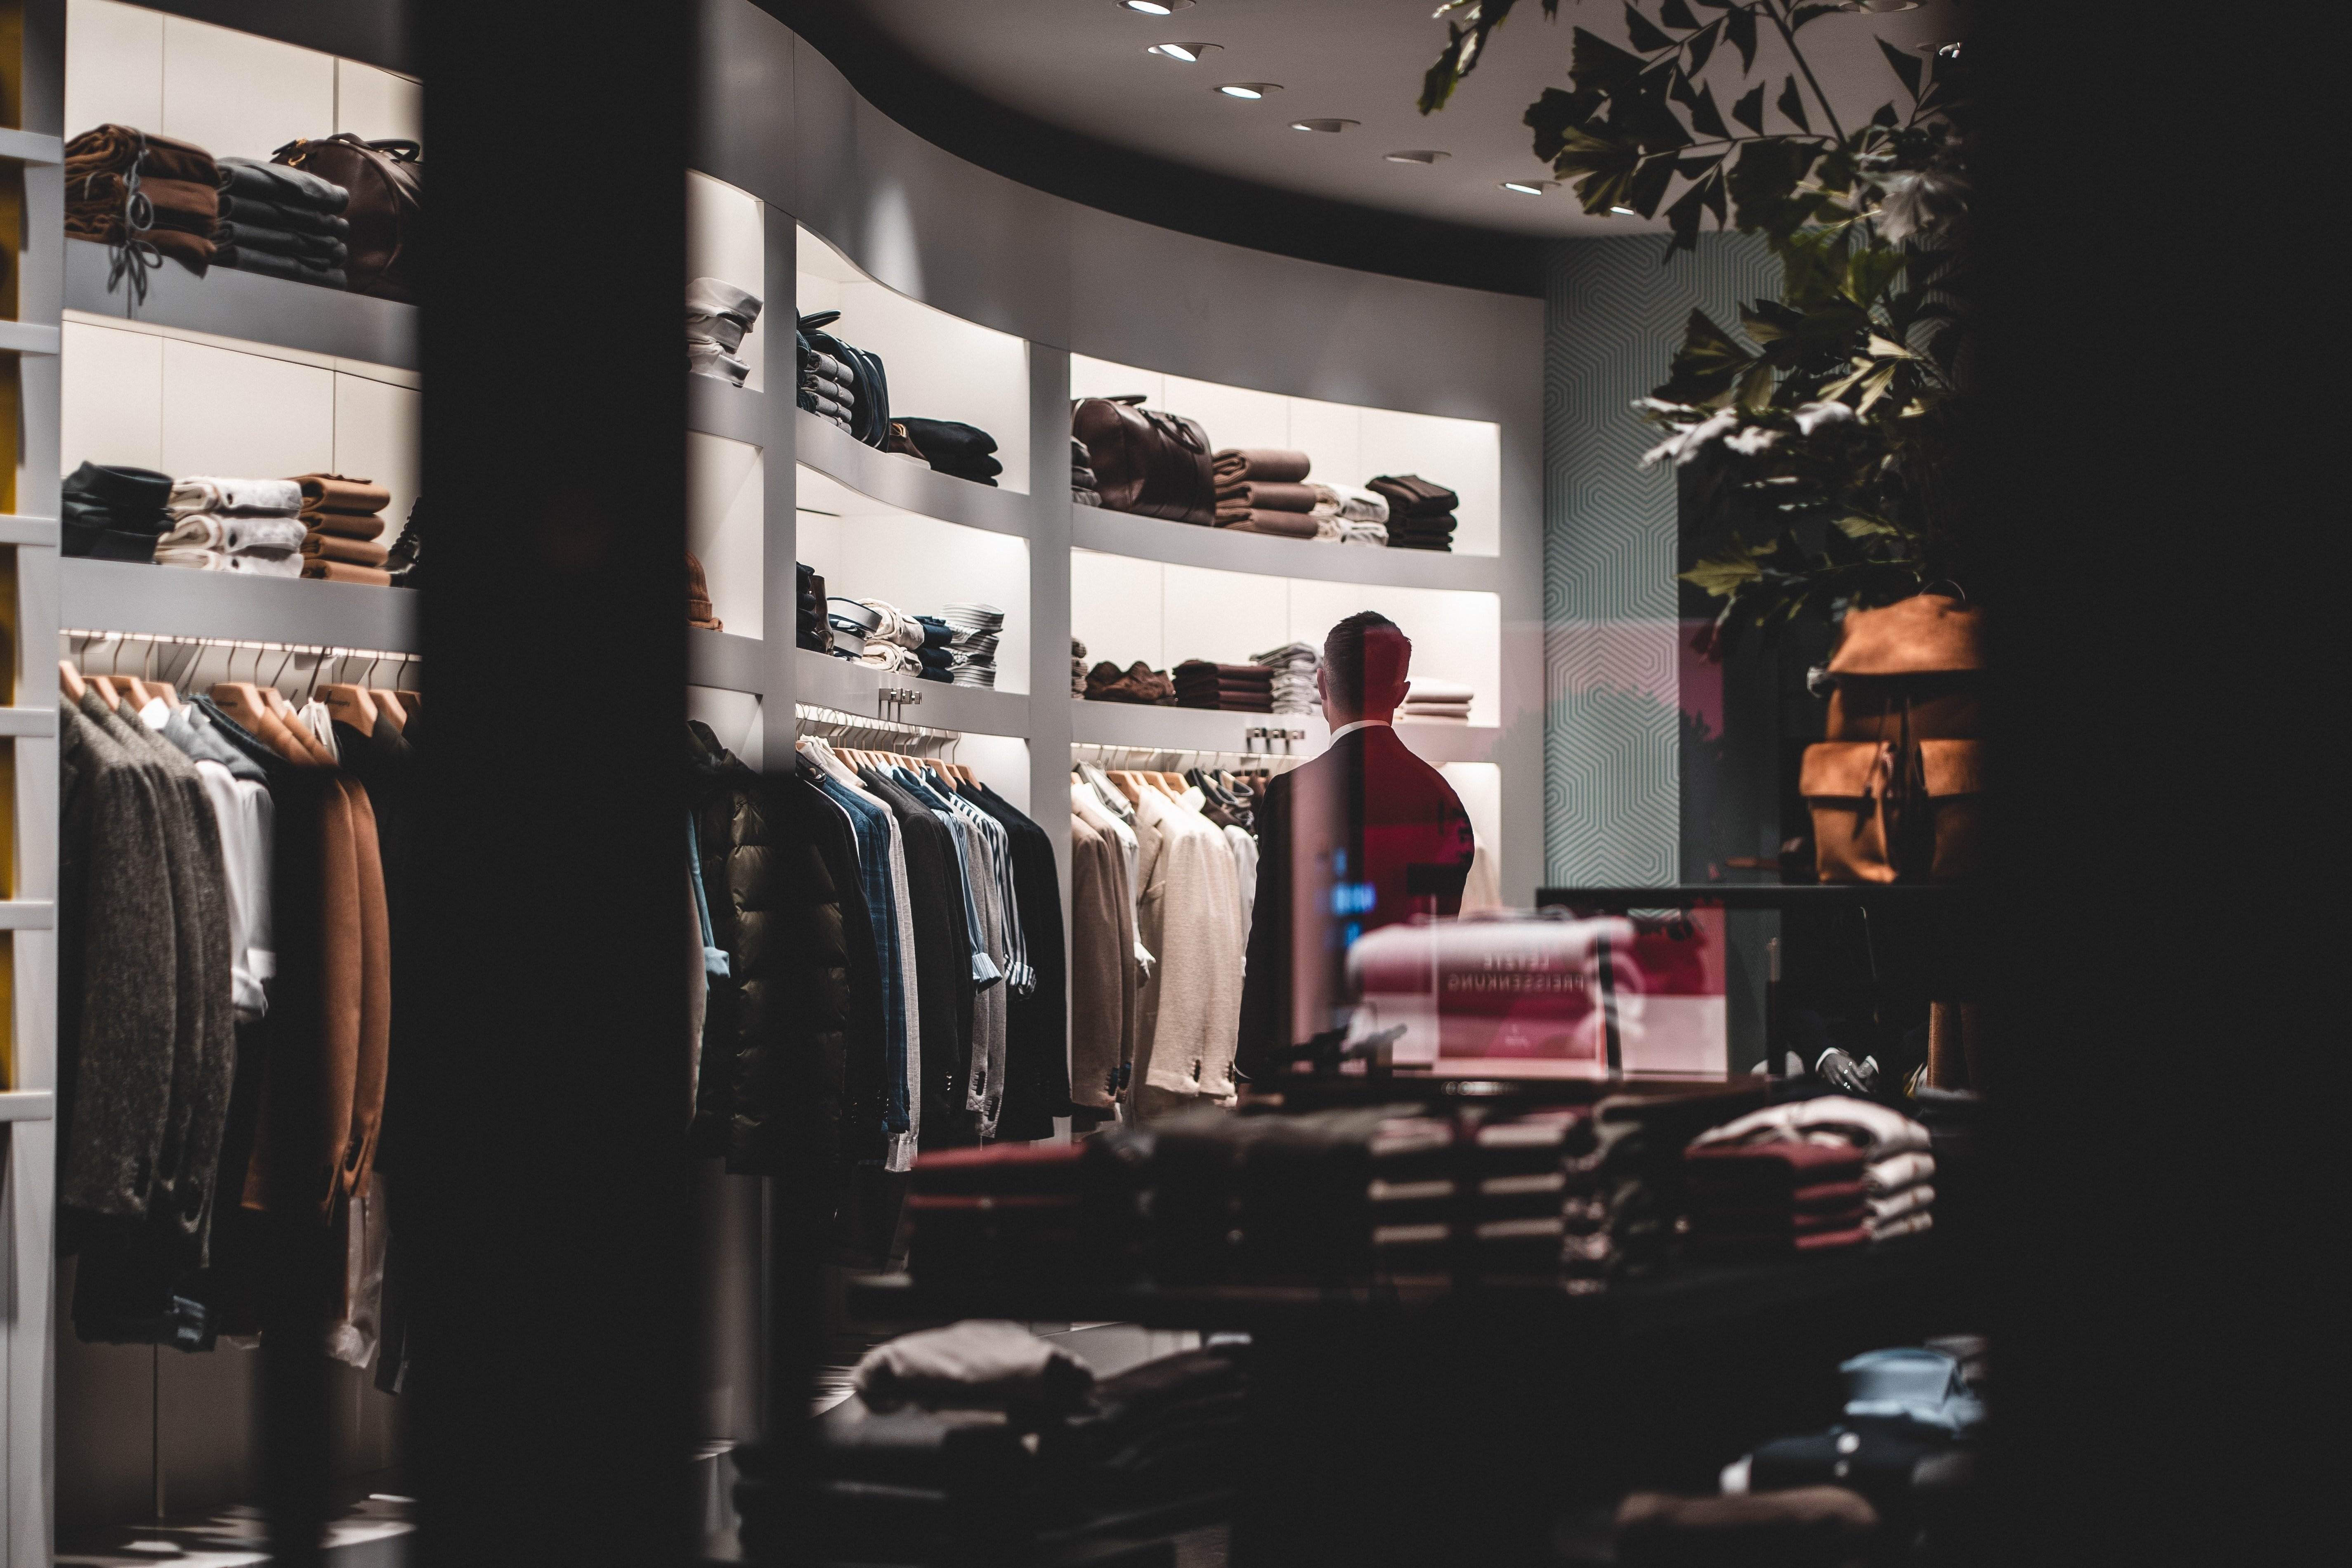 Pictured - A stylish man shopping at a fashion store   Source: Pexels